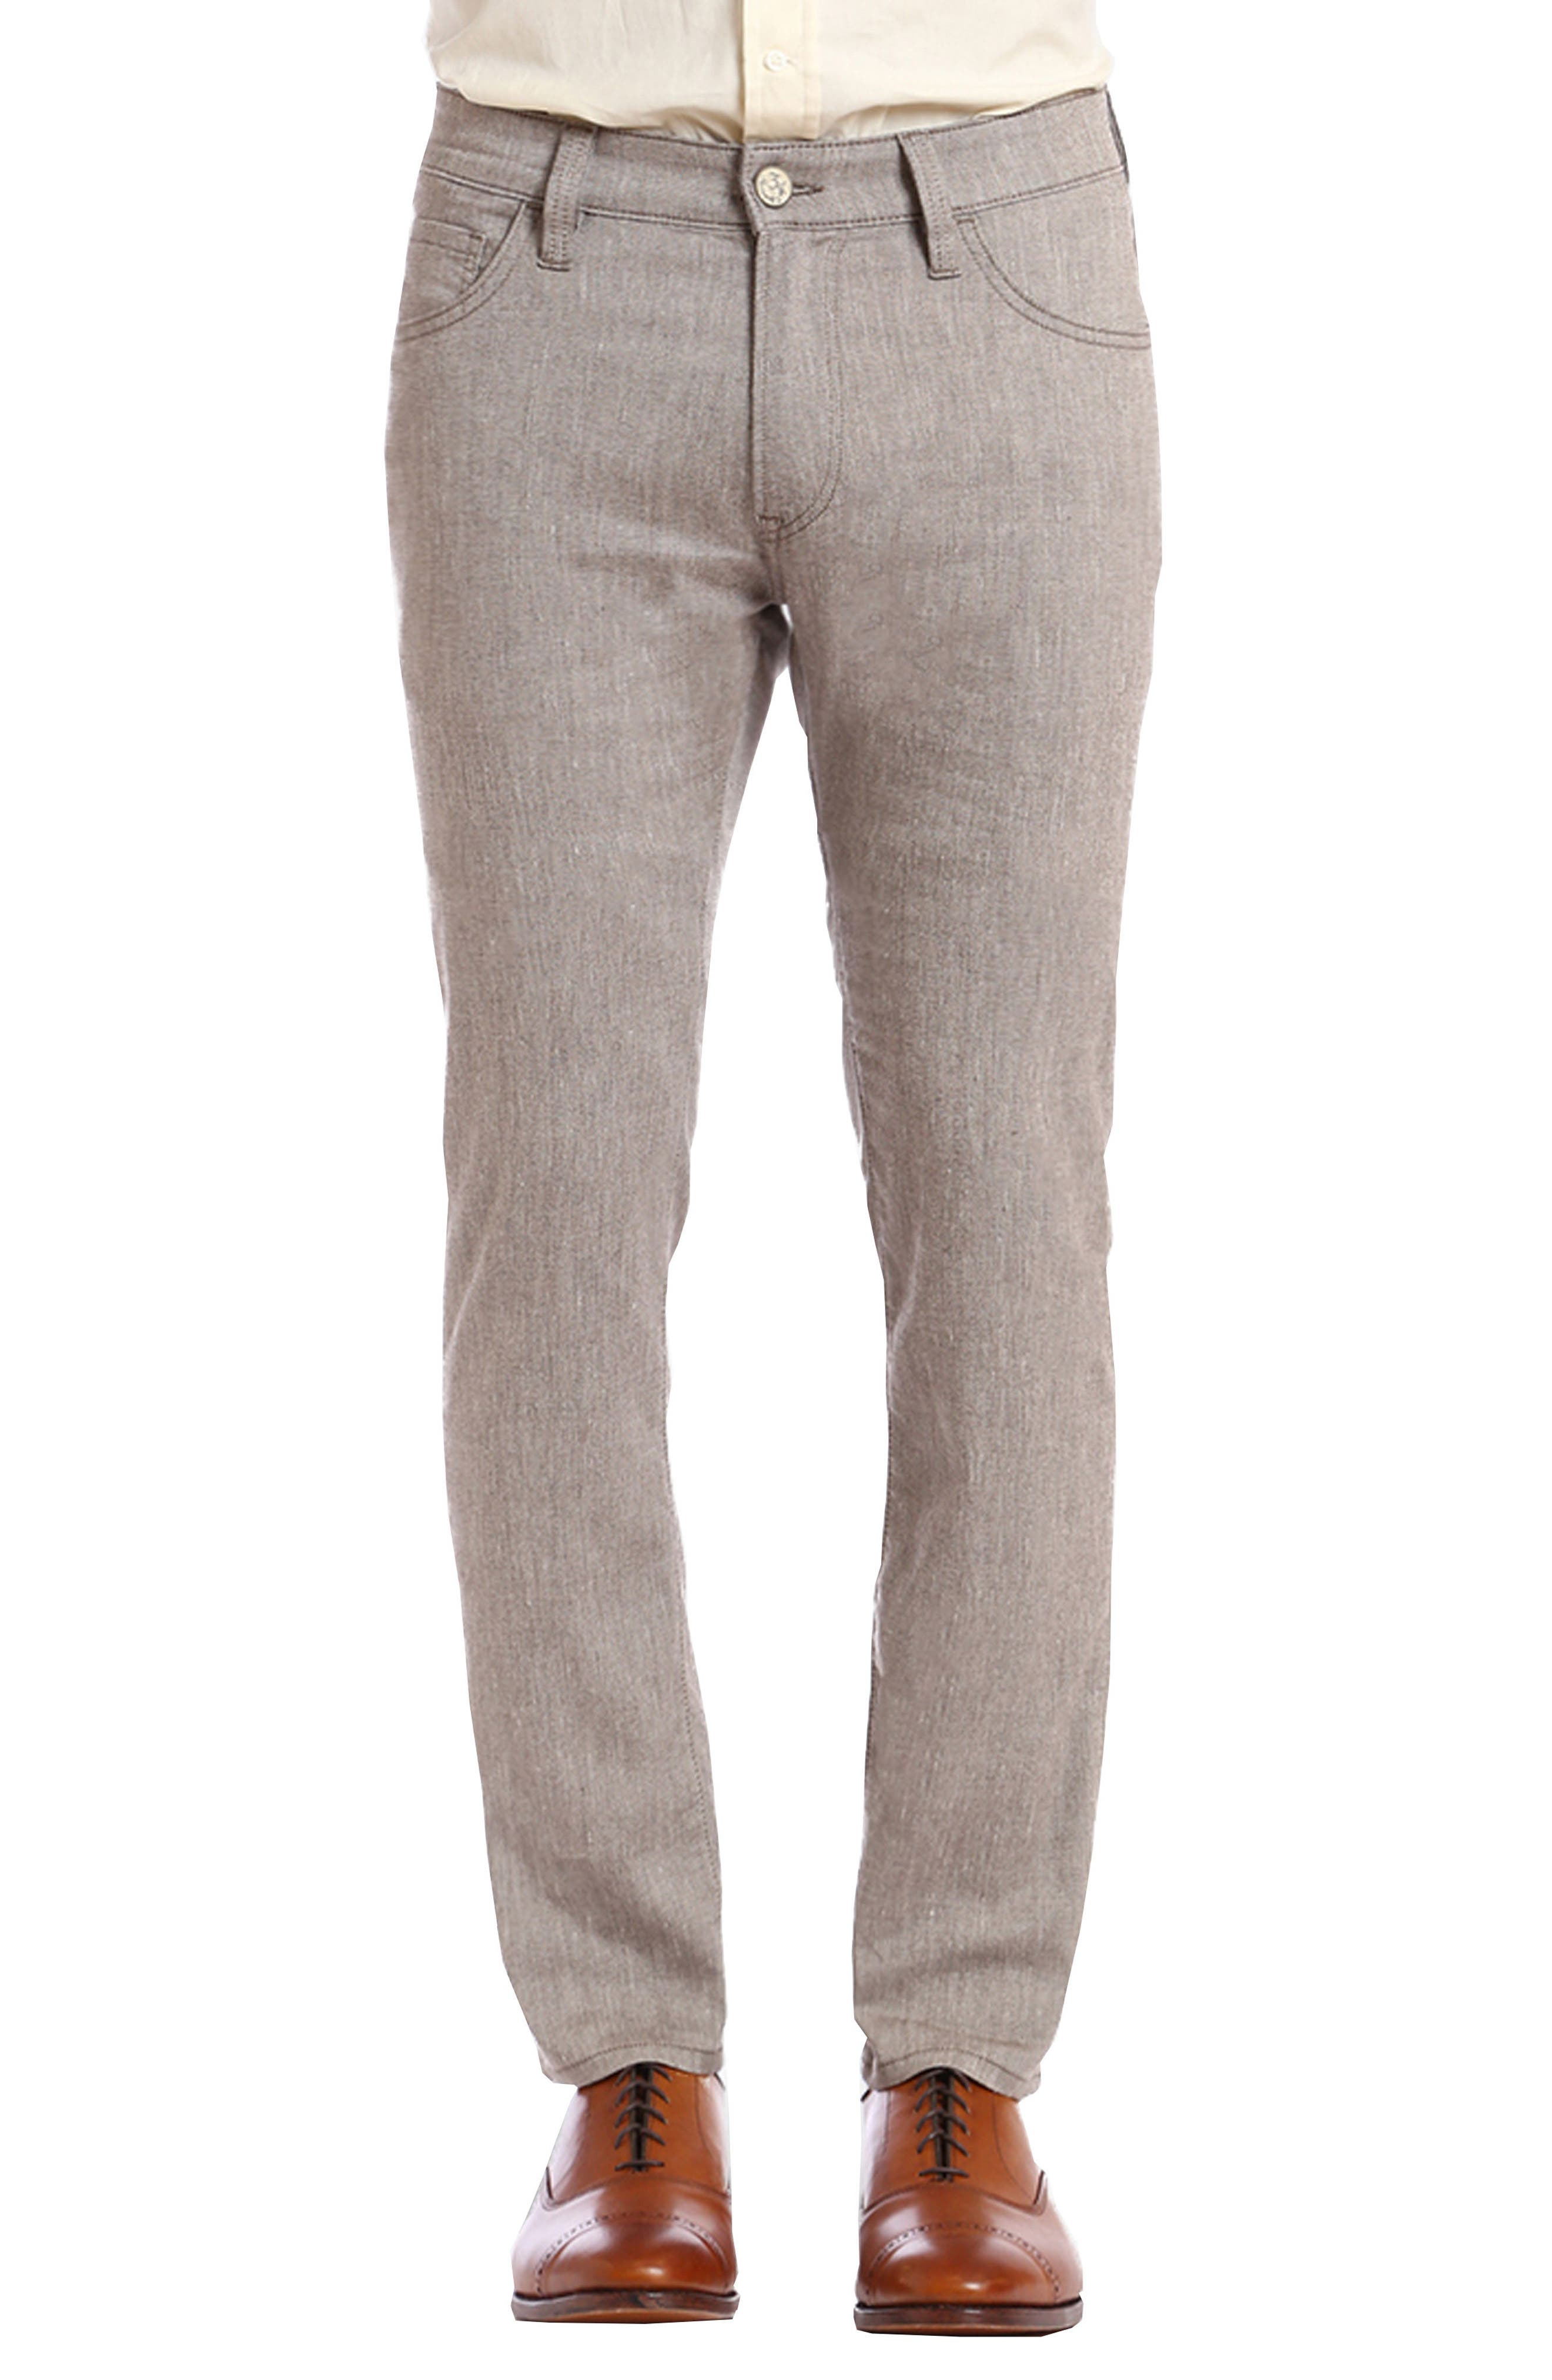 Courage Straight Leg Pants,                         Main,                         color, Latte Textured